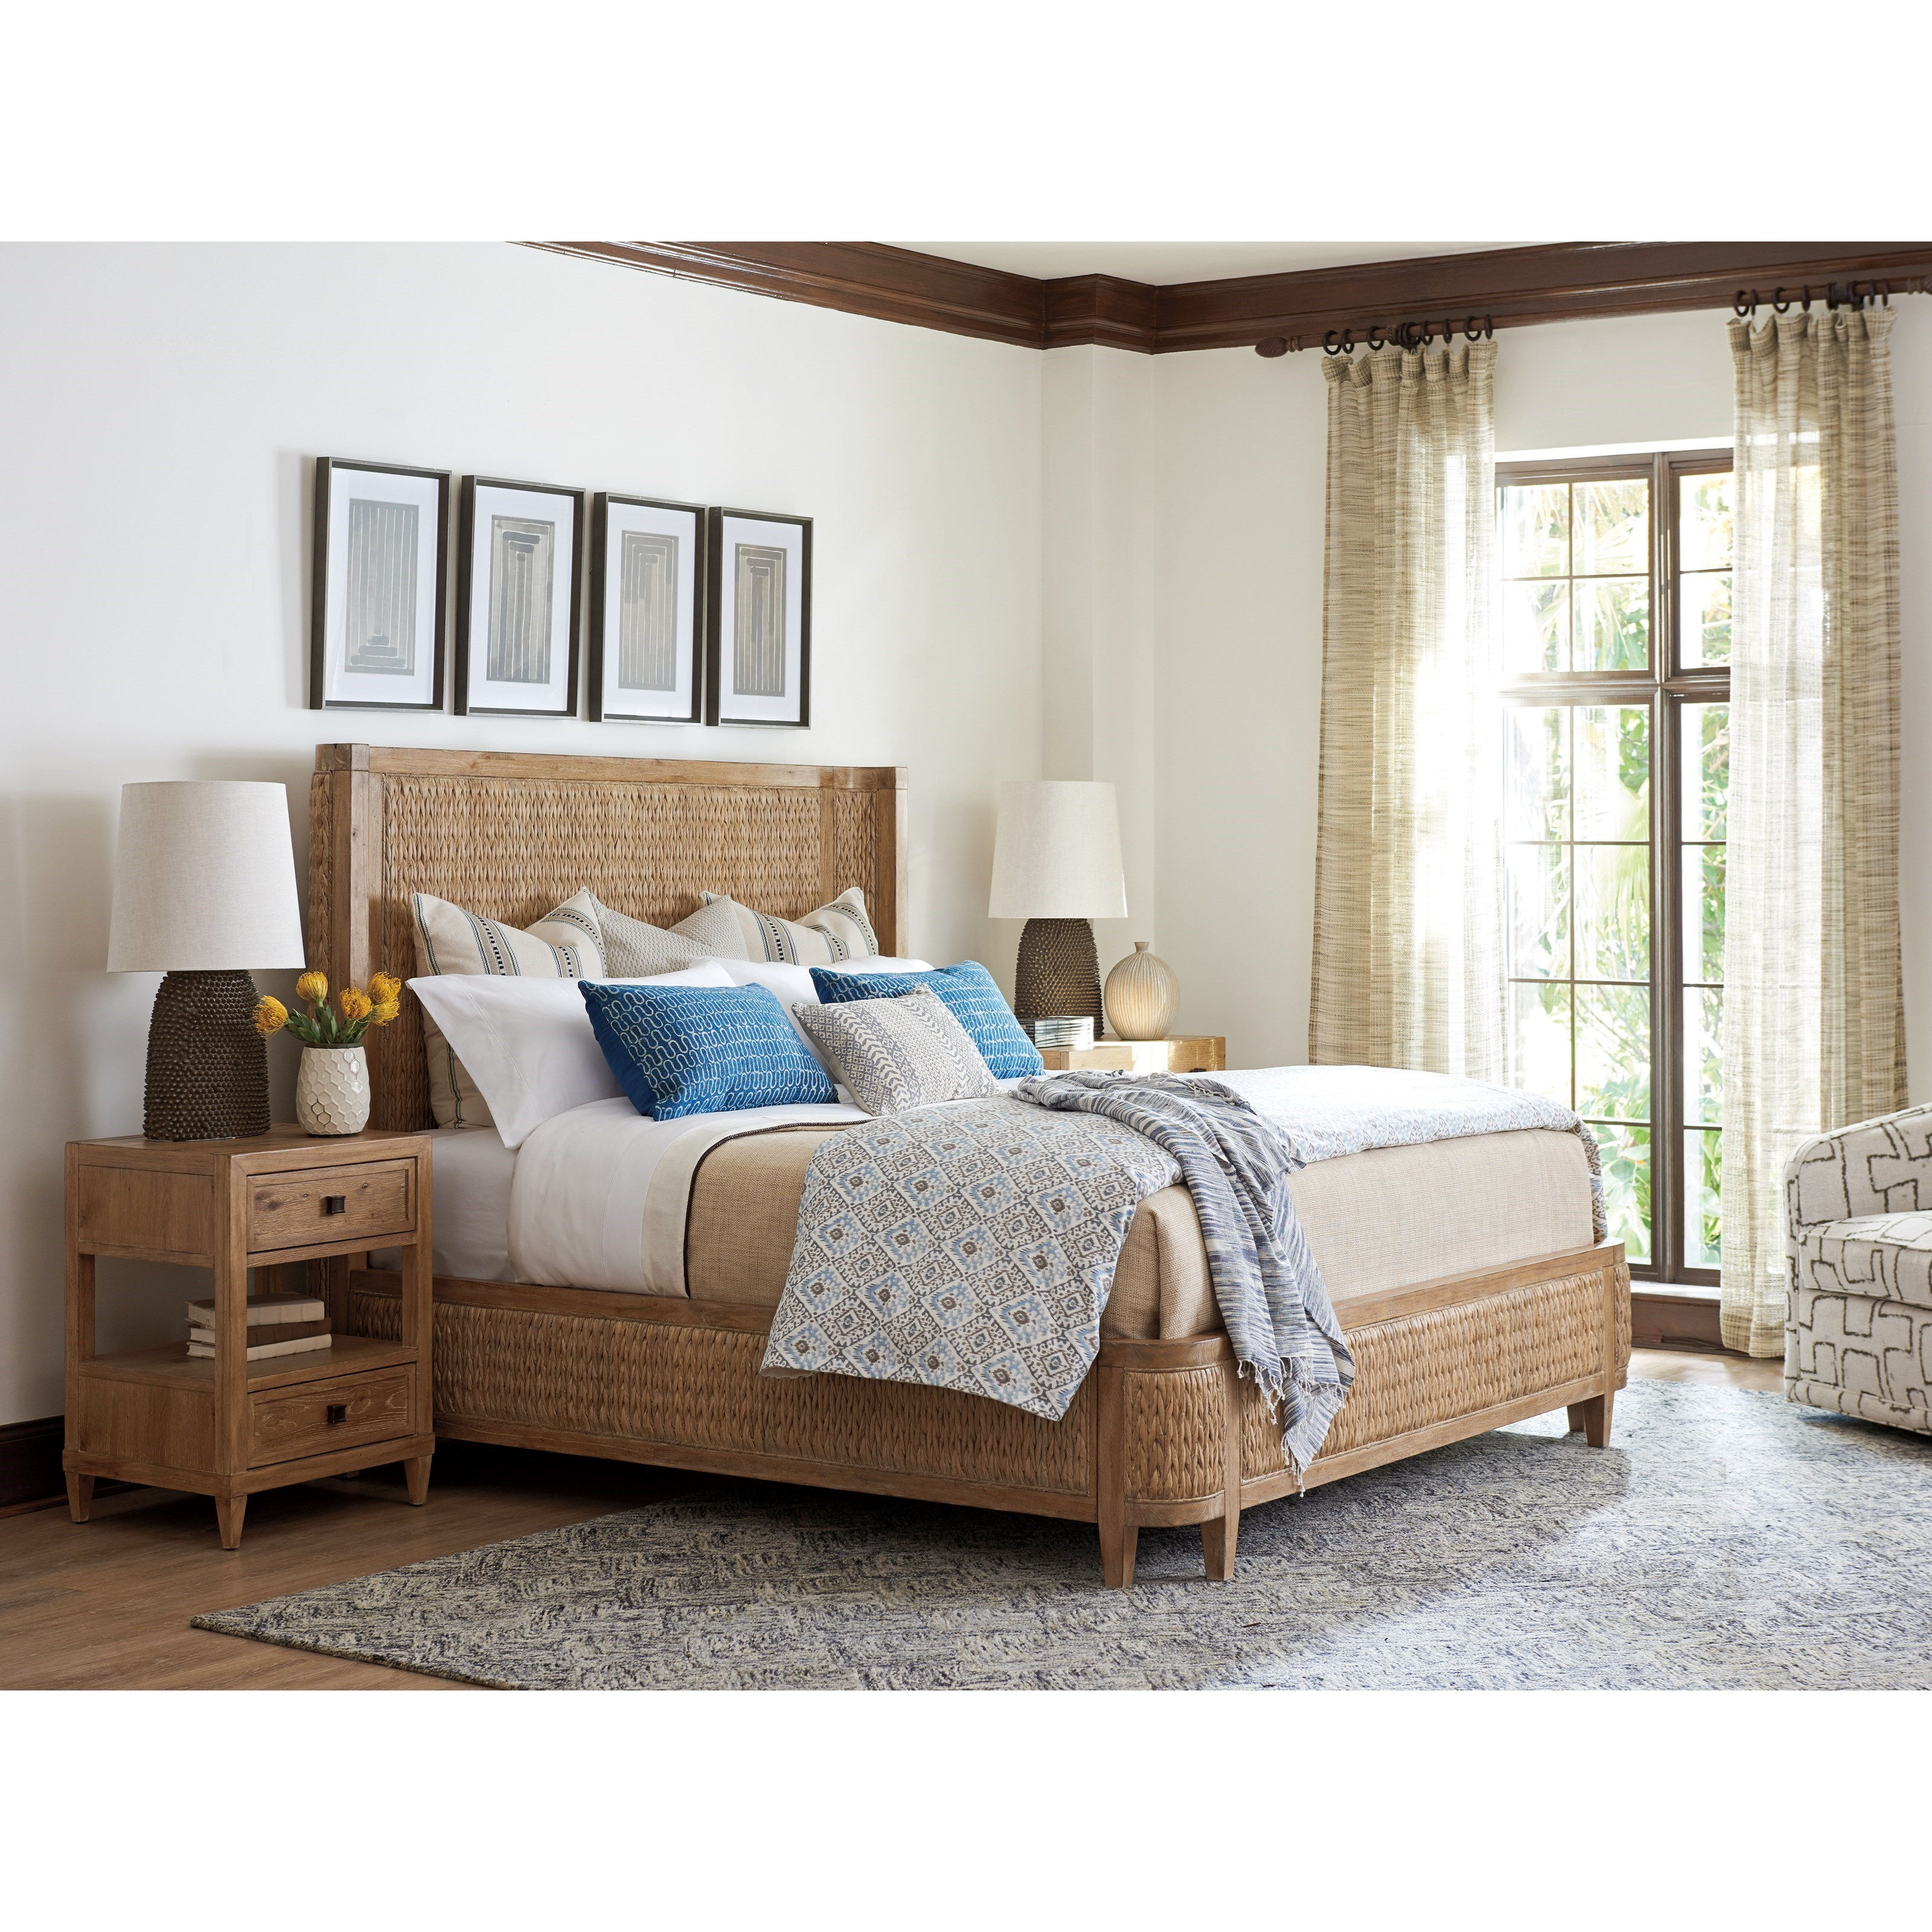 Merveilleux Los Altos Queen Bedroom Group By Tommy Bahama Home At Baeru0027s Furniture